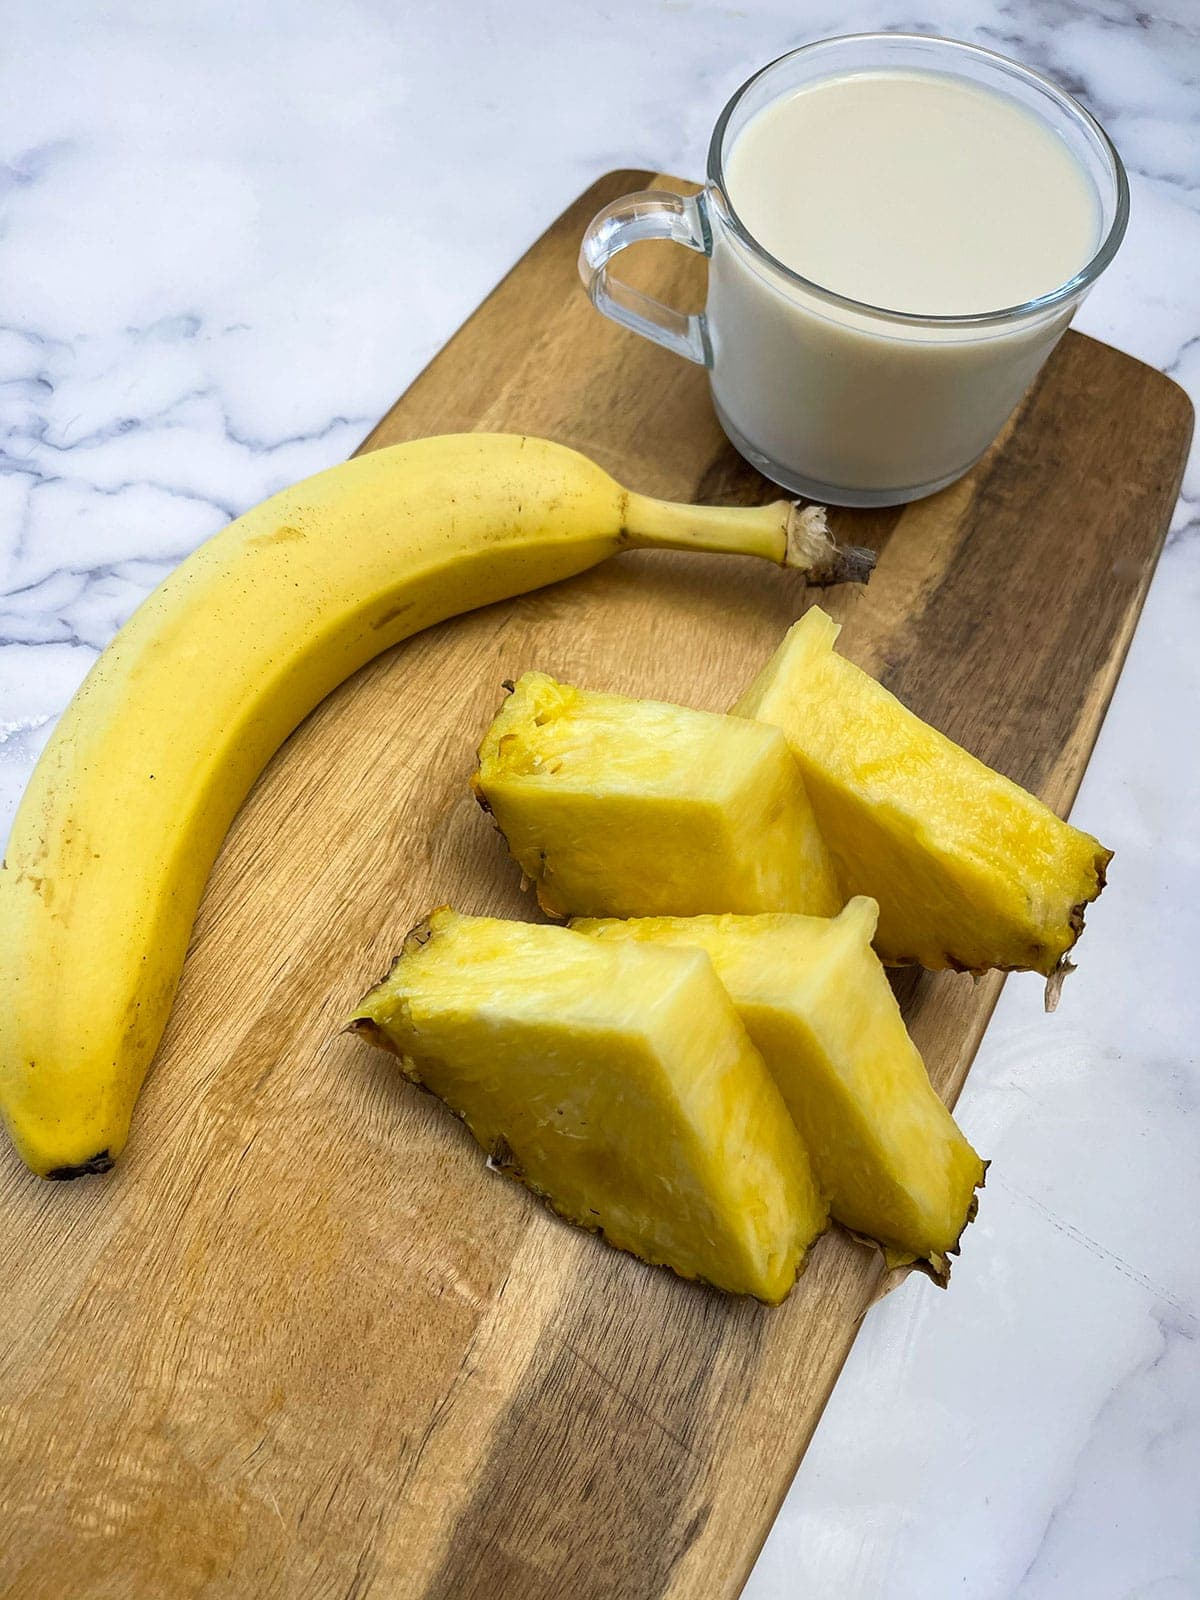 ingredients for pineapple banana smoothie, pineapple, banana and almond milk